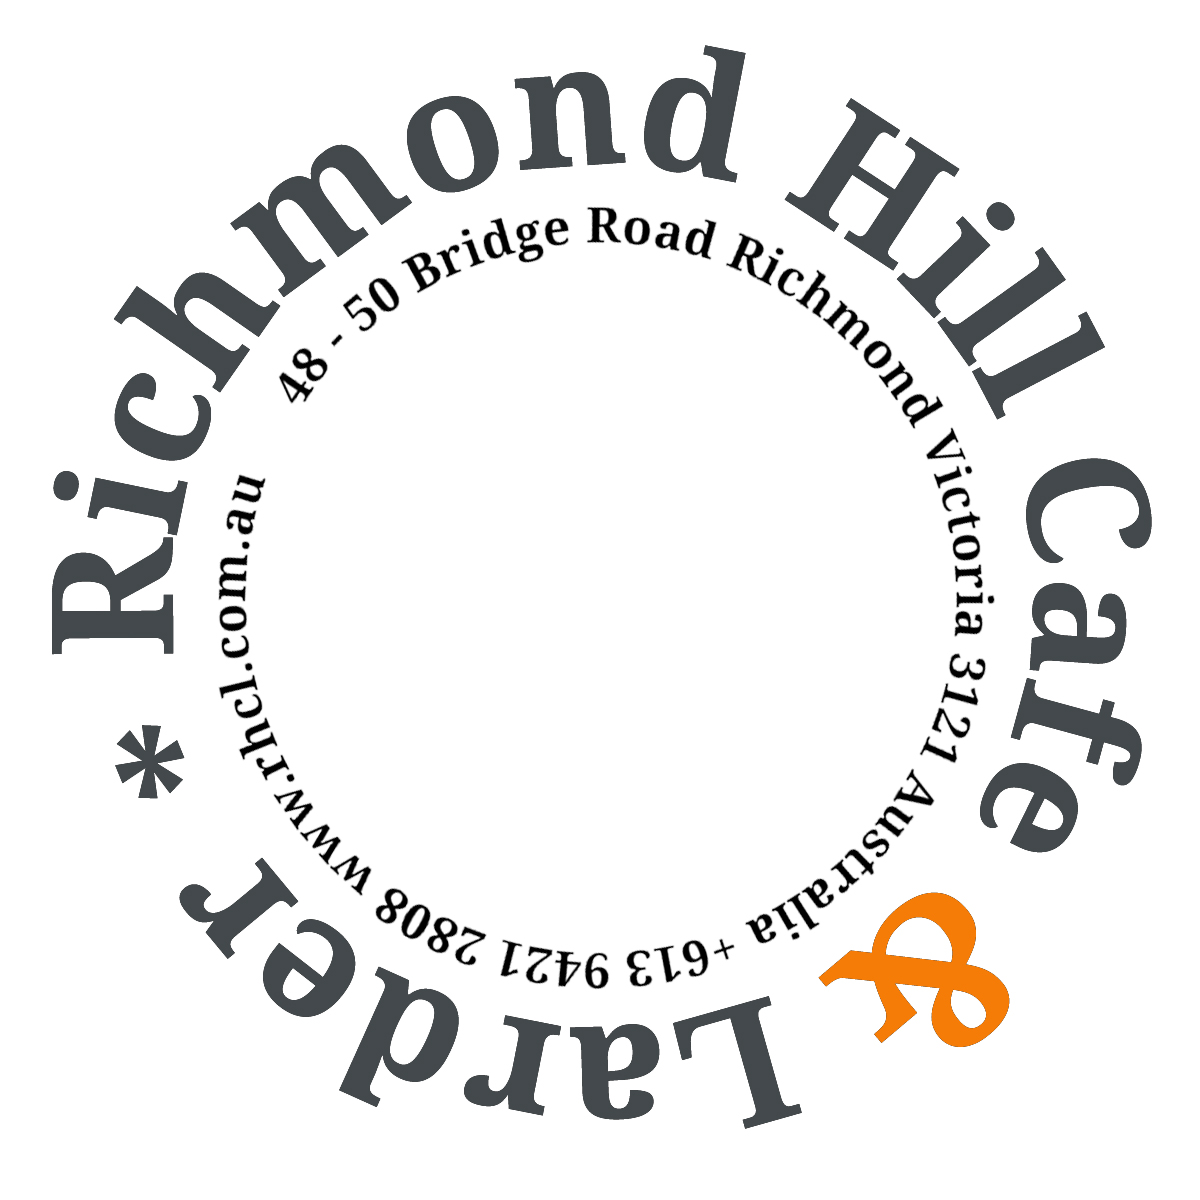 RICHMOND HILL CAFE & LARDER